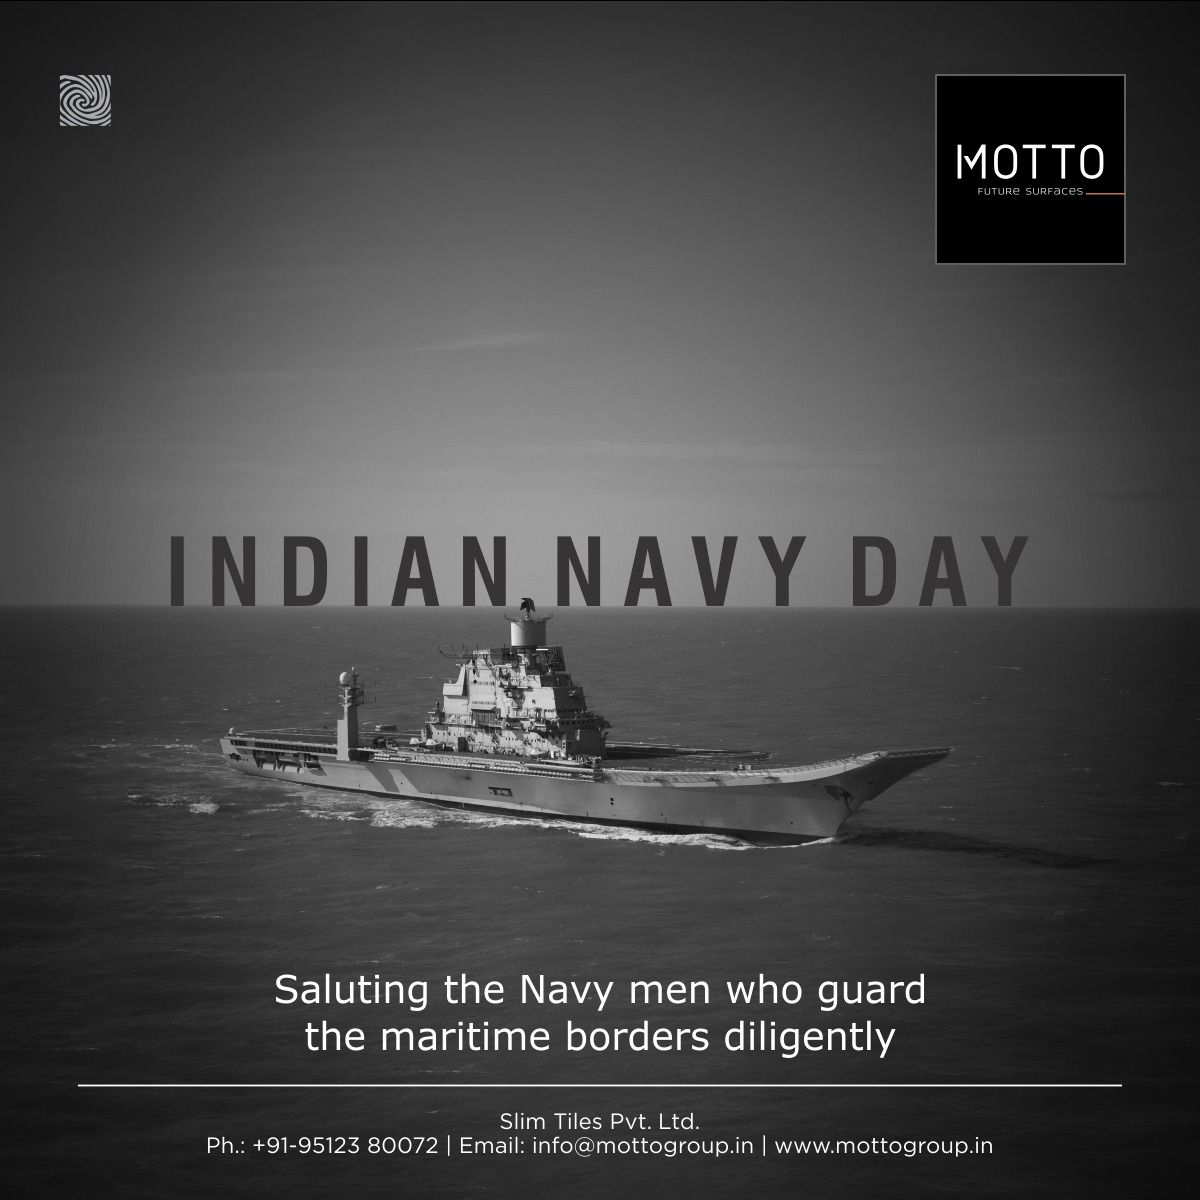 Saluting The Navy Men Who Guard The Maritime Borders Diligently Indian Navy Day Motto Tiles Mottogroup Ceramic Floort Navy Day Indian Navy Day Navy Man